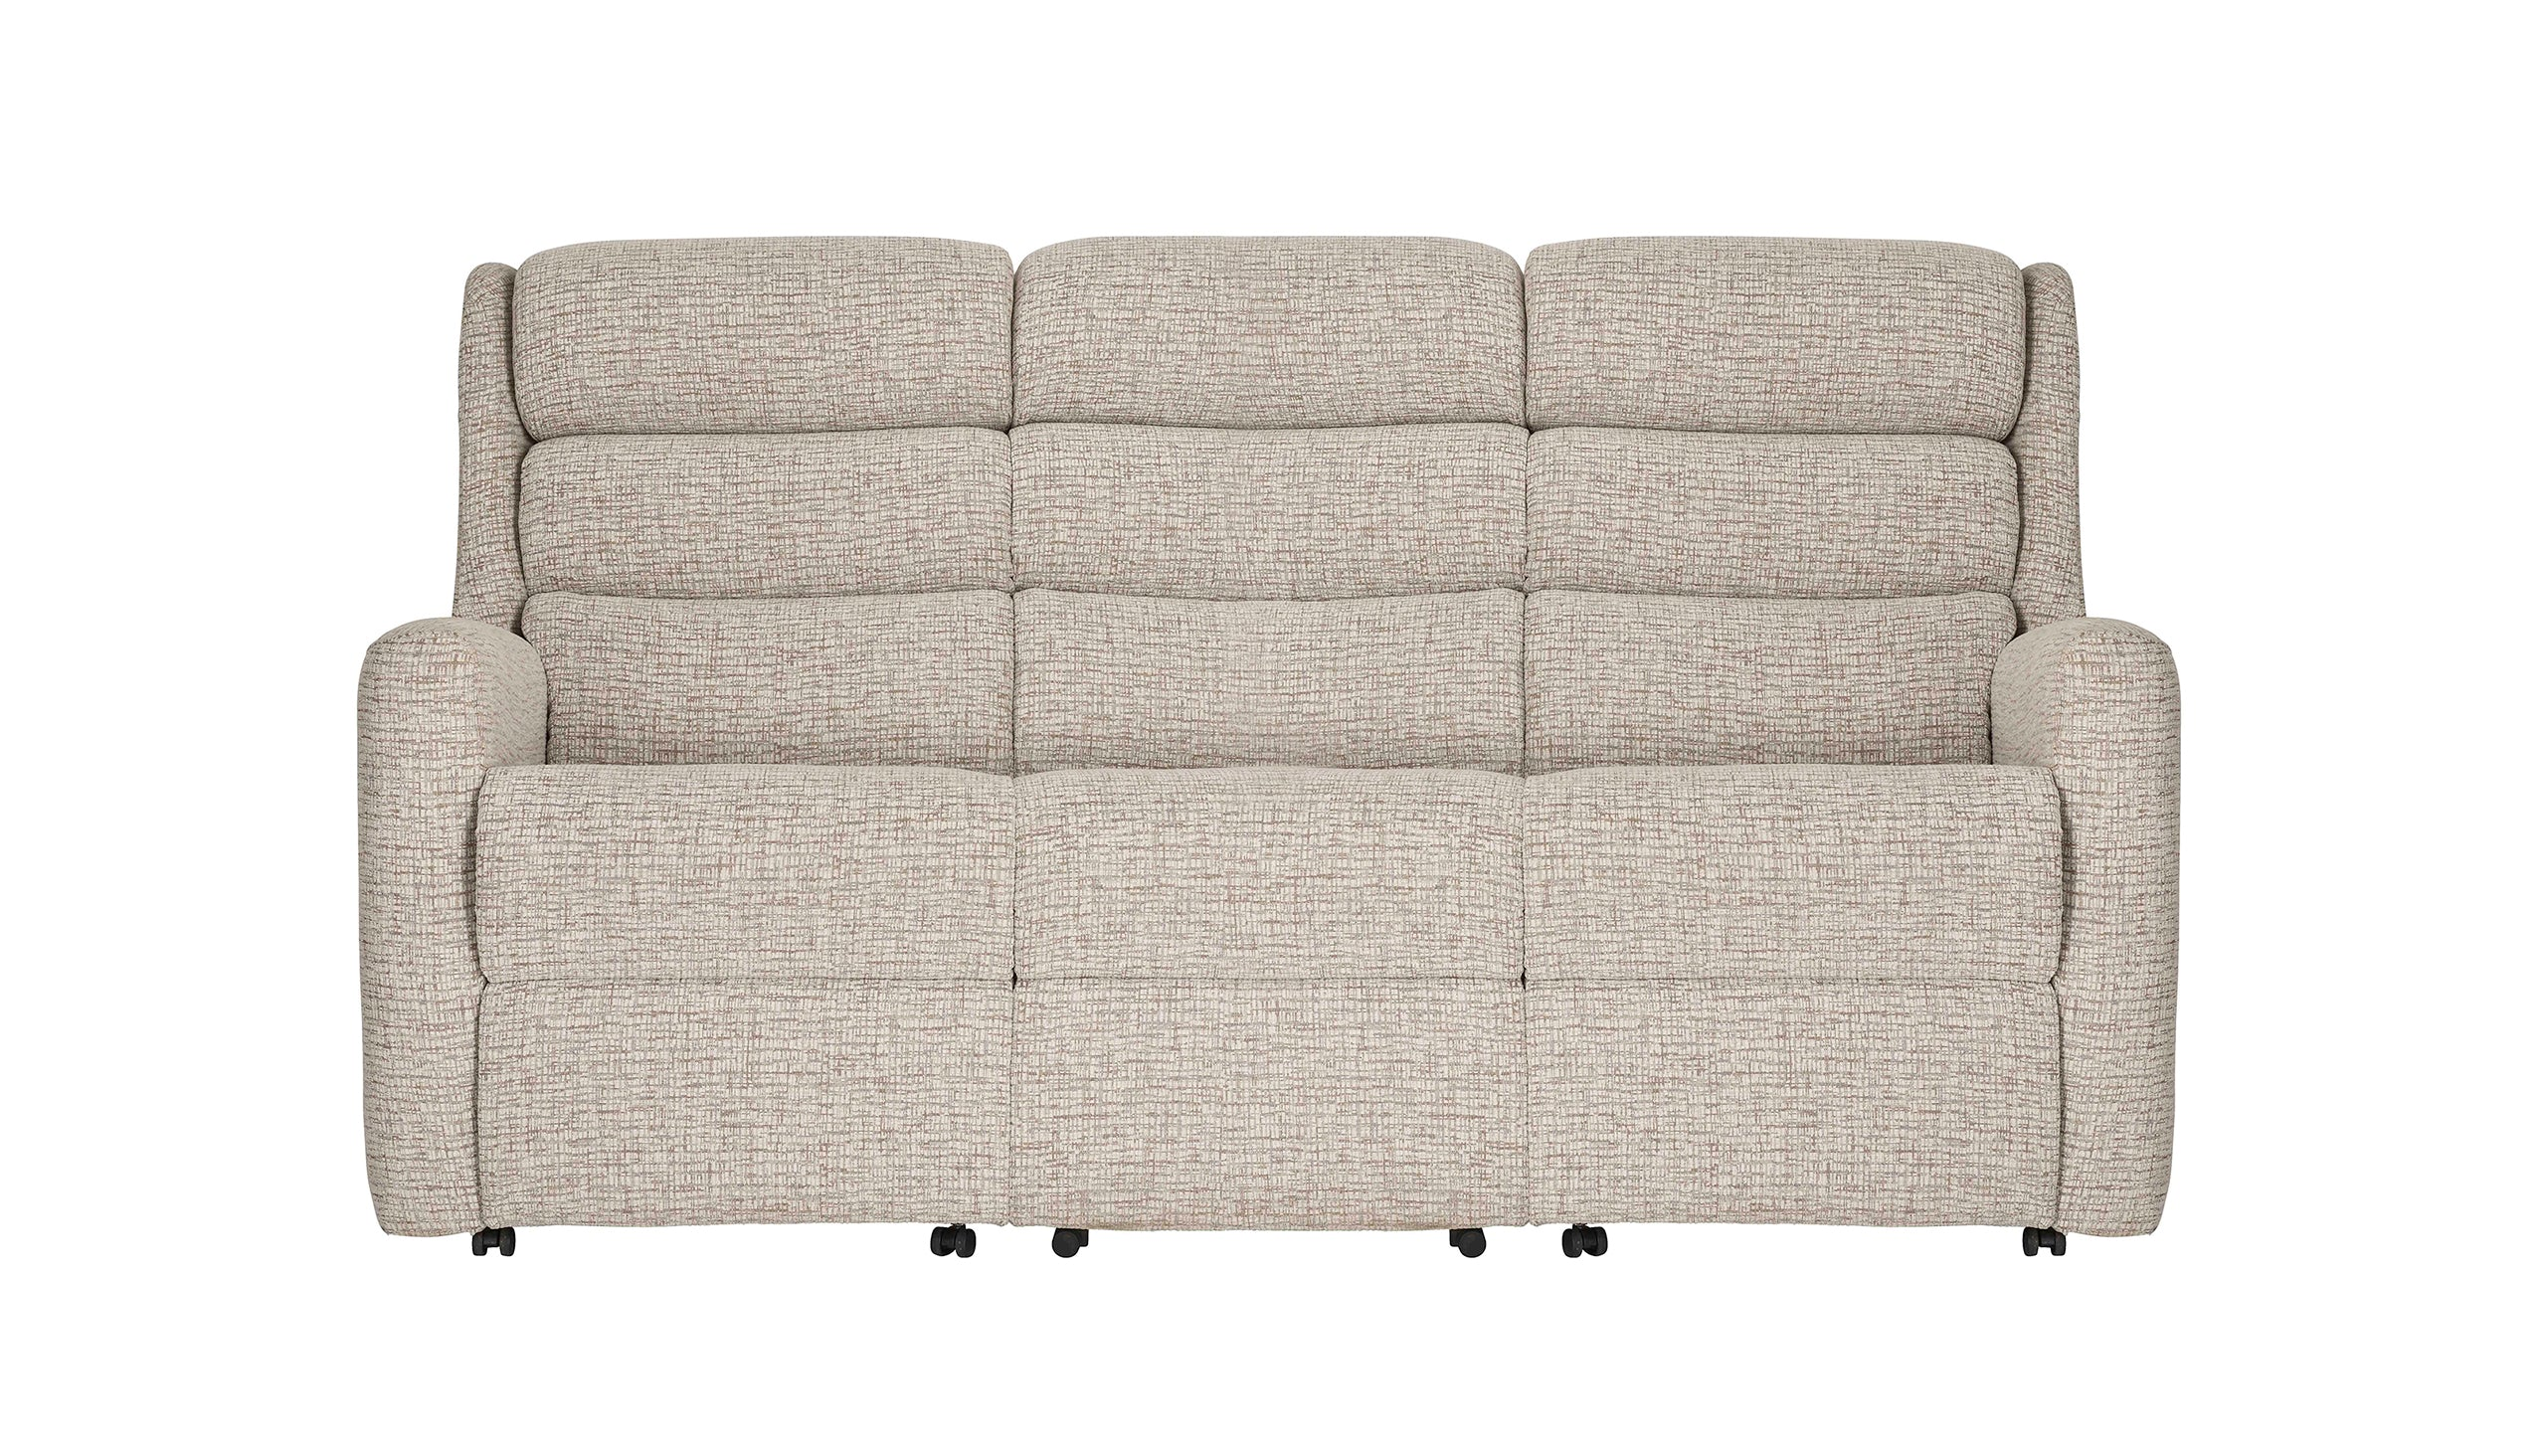 Celebrity Somersby 3 Seater Sofa